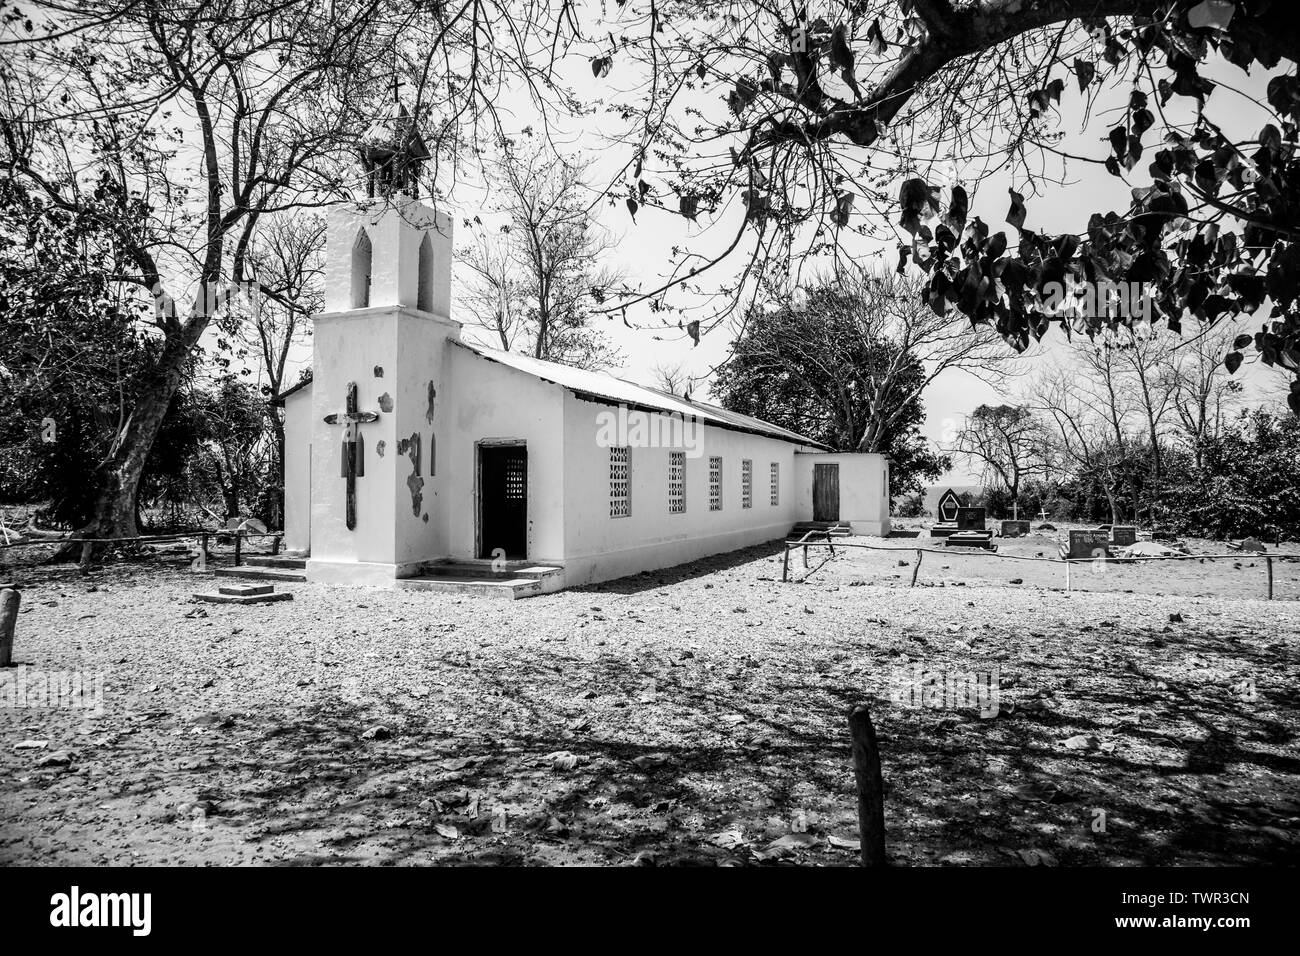 An old church in Nkhota-Kota, Malawi - Stock Image